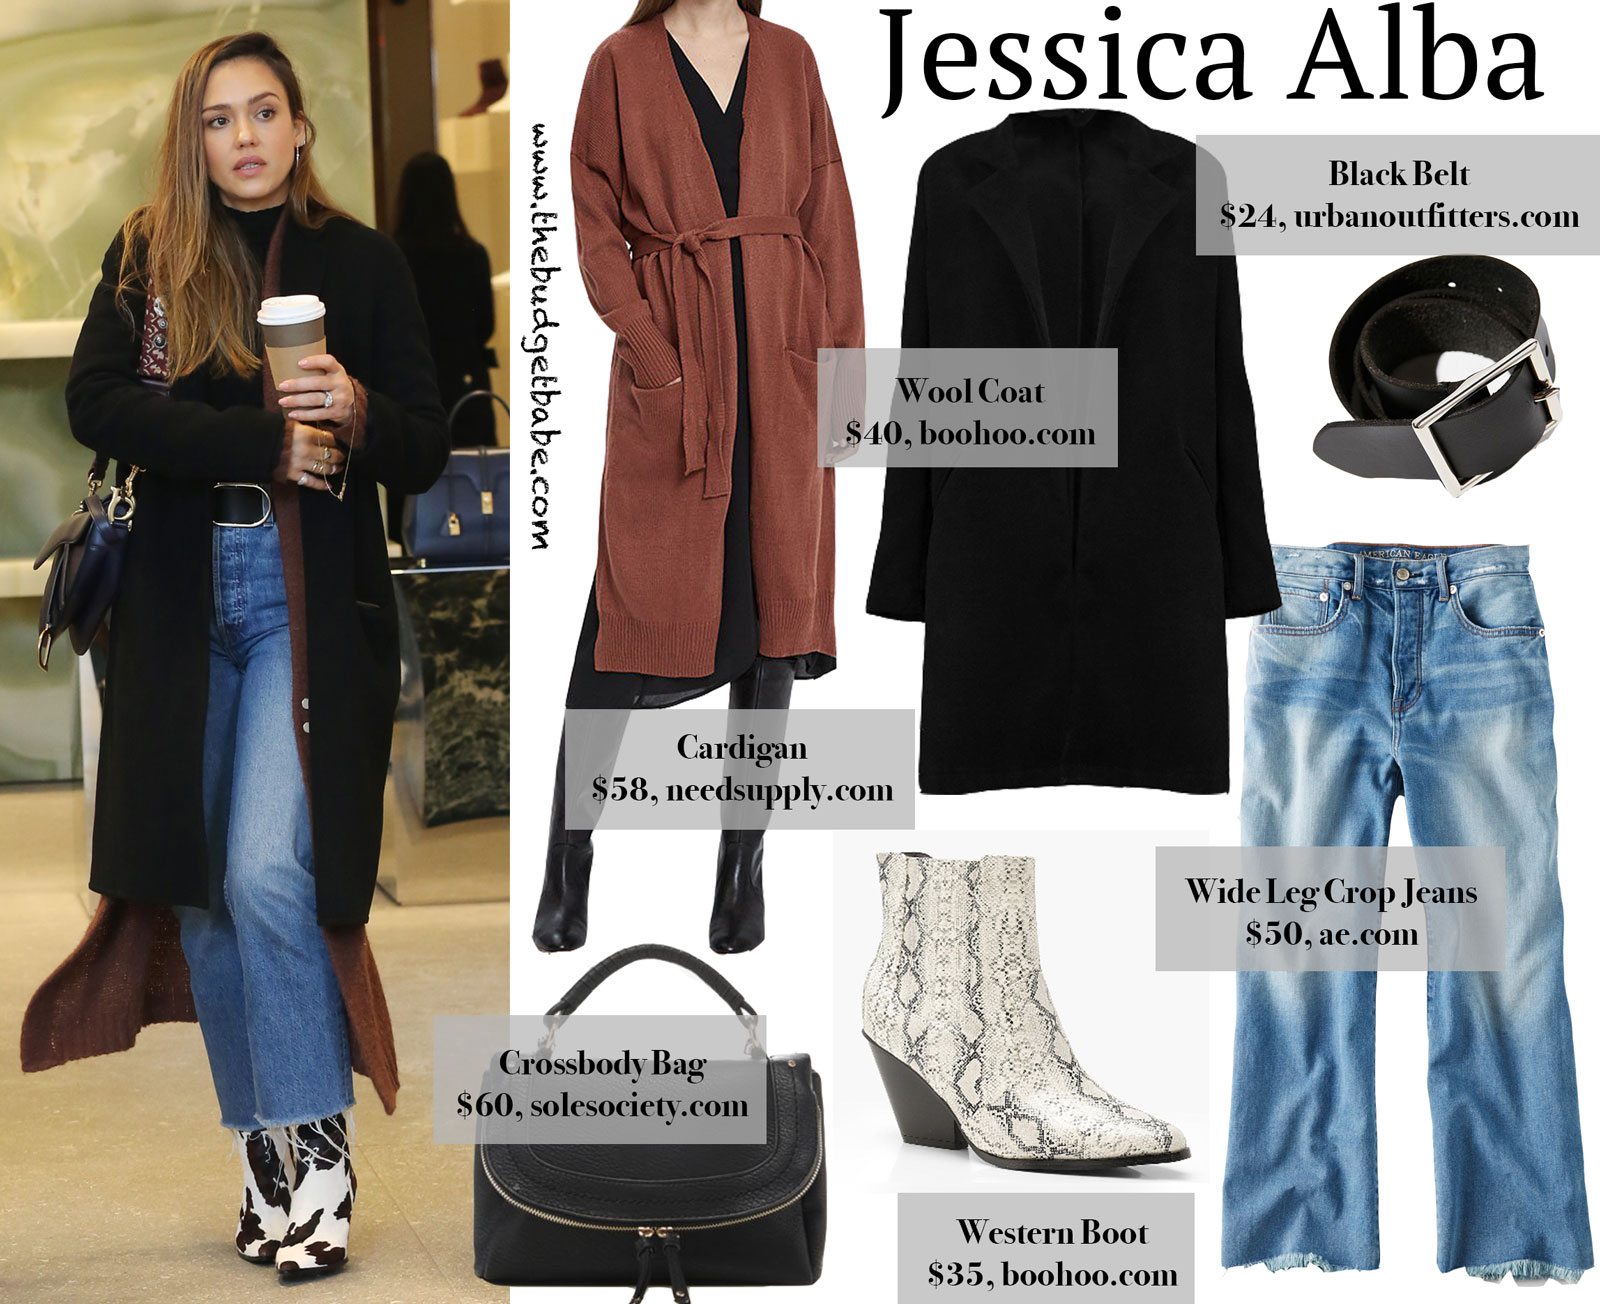 Jessica Alba's MANGO Western Boots Look for Less